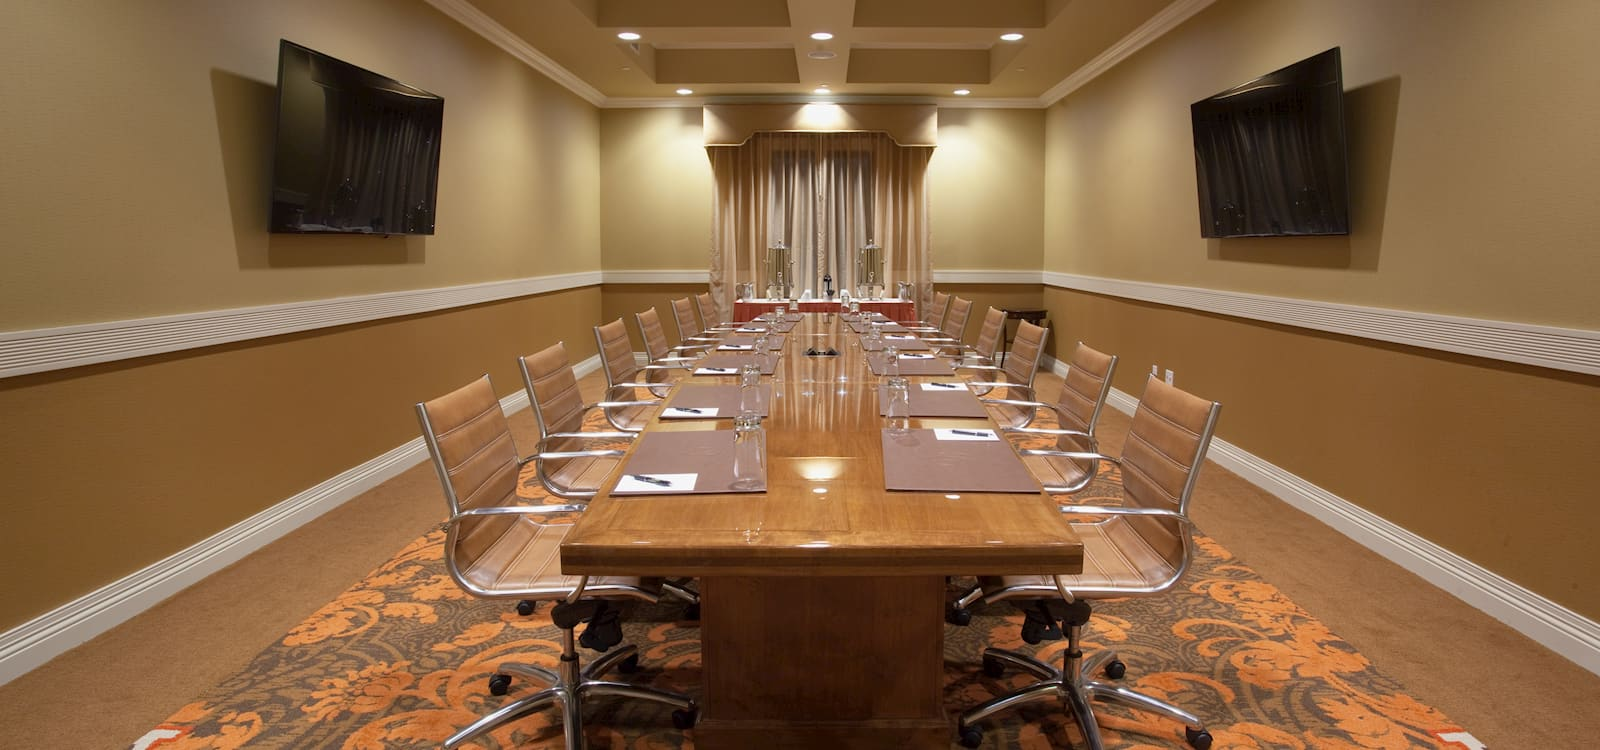 Meetings Facilities at Woolley's Classic Suites Hotel, Aurora